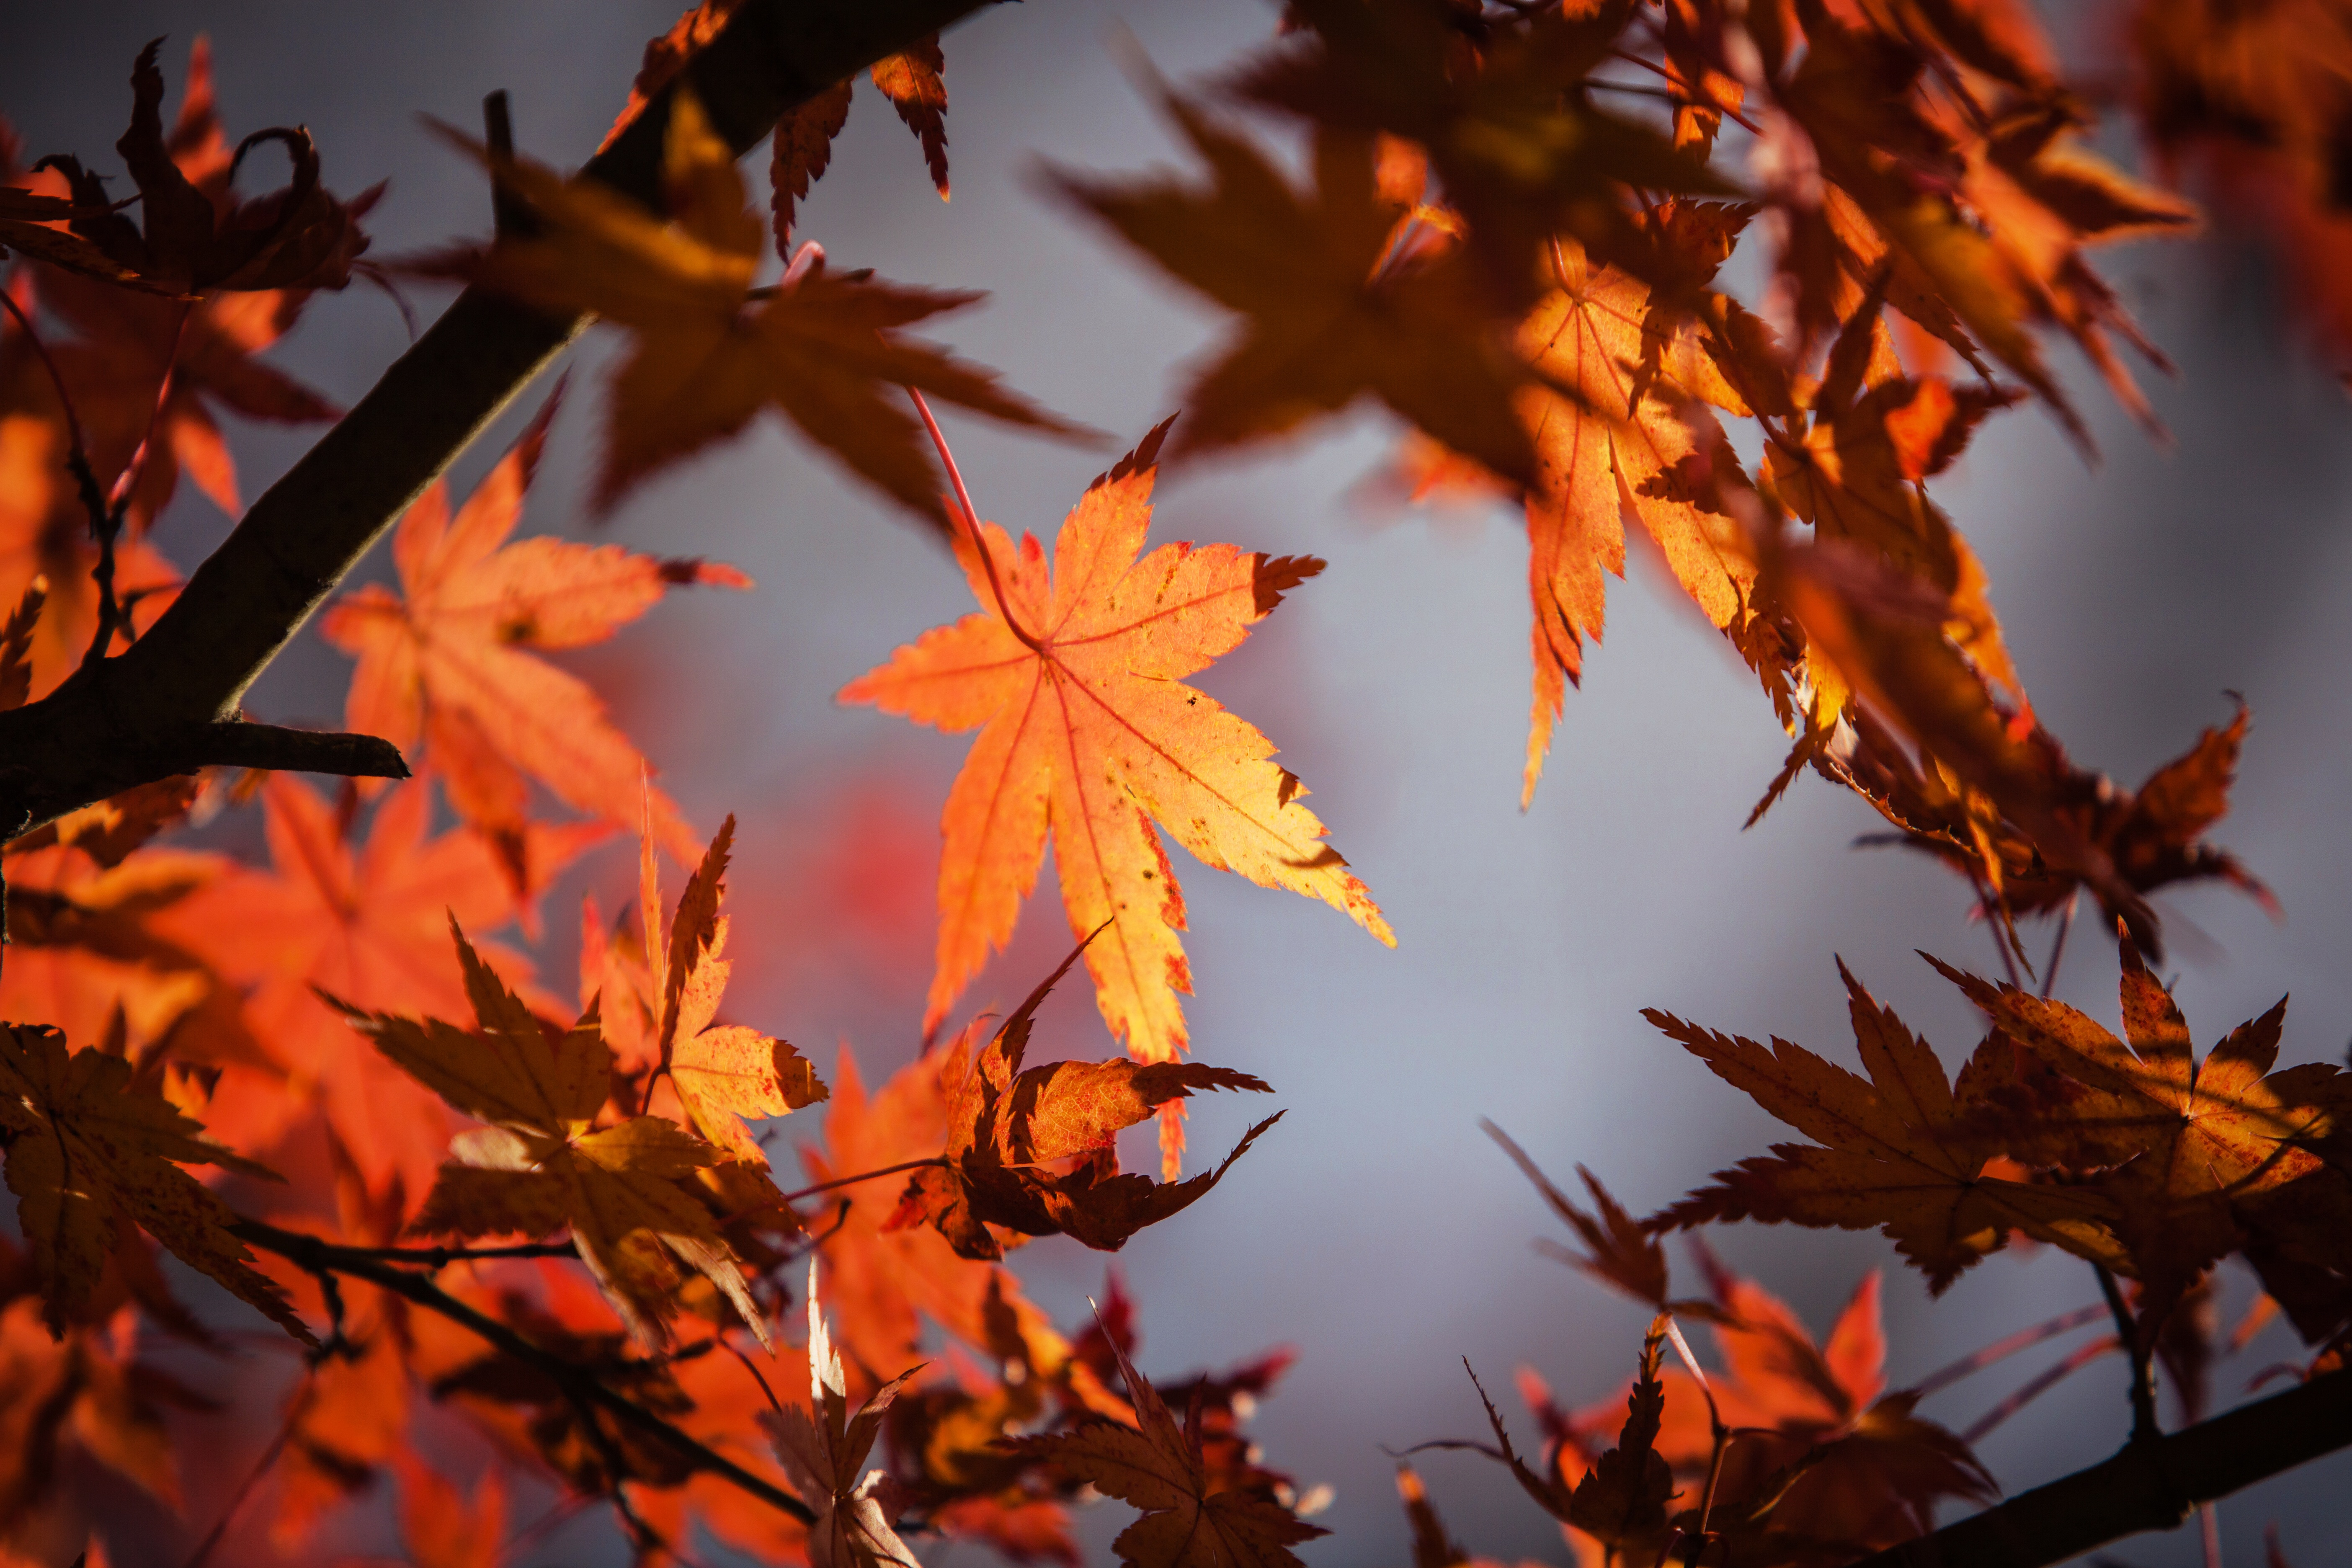 Autumn Leaves 4k 5k Hd Flowers 4k Wallpapers Images Backgrounds Photos And Pictures